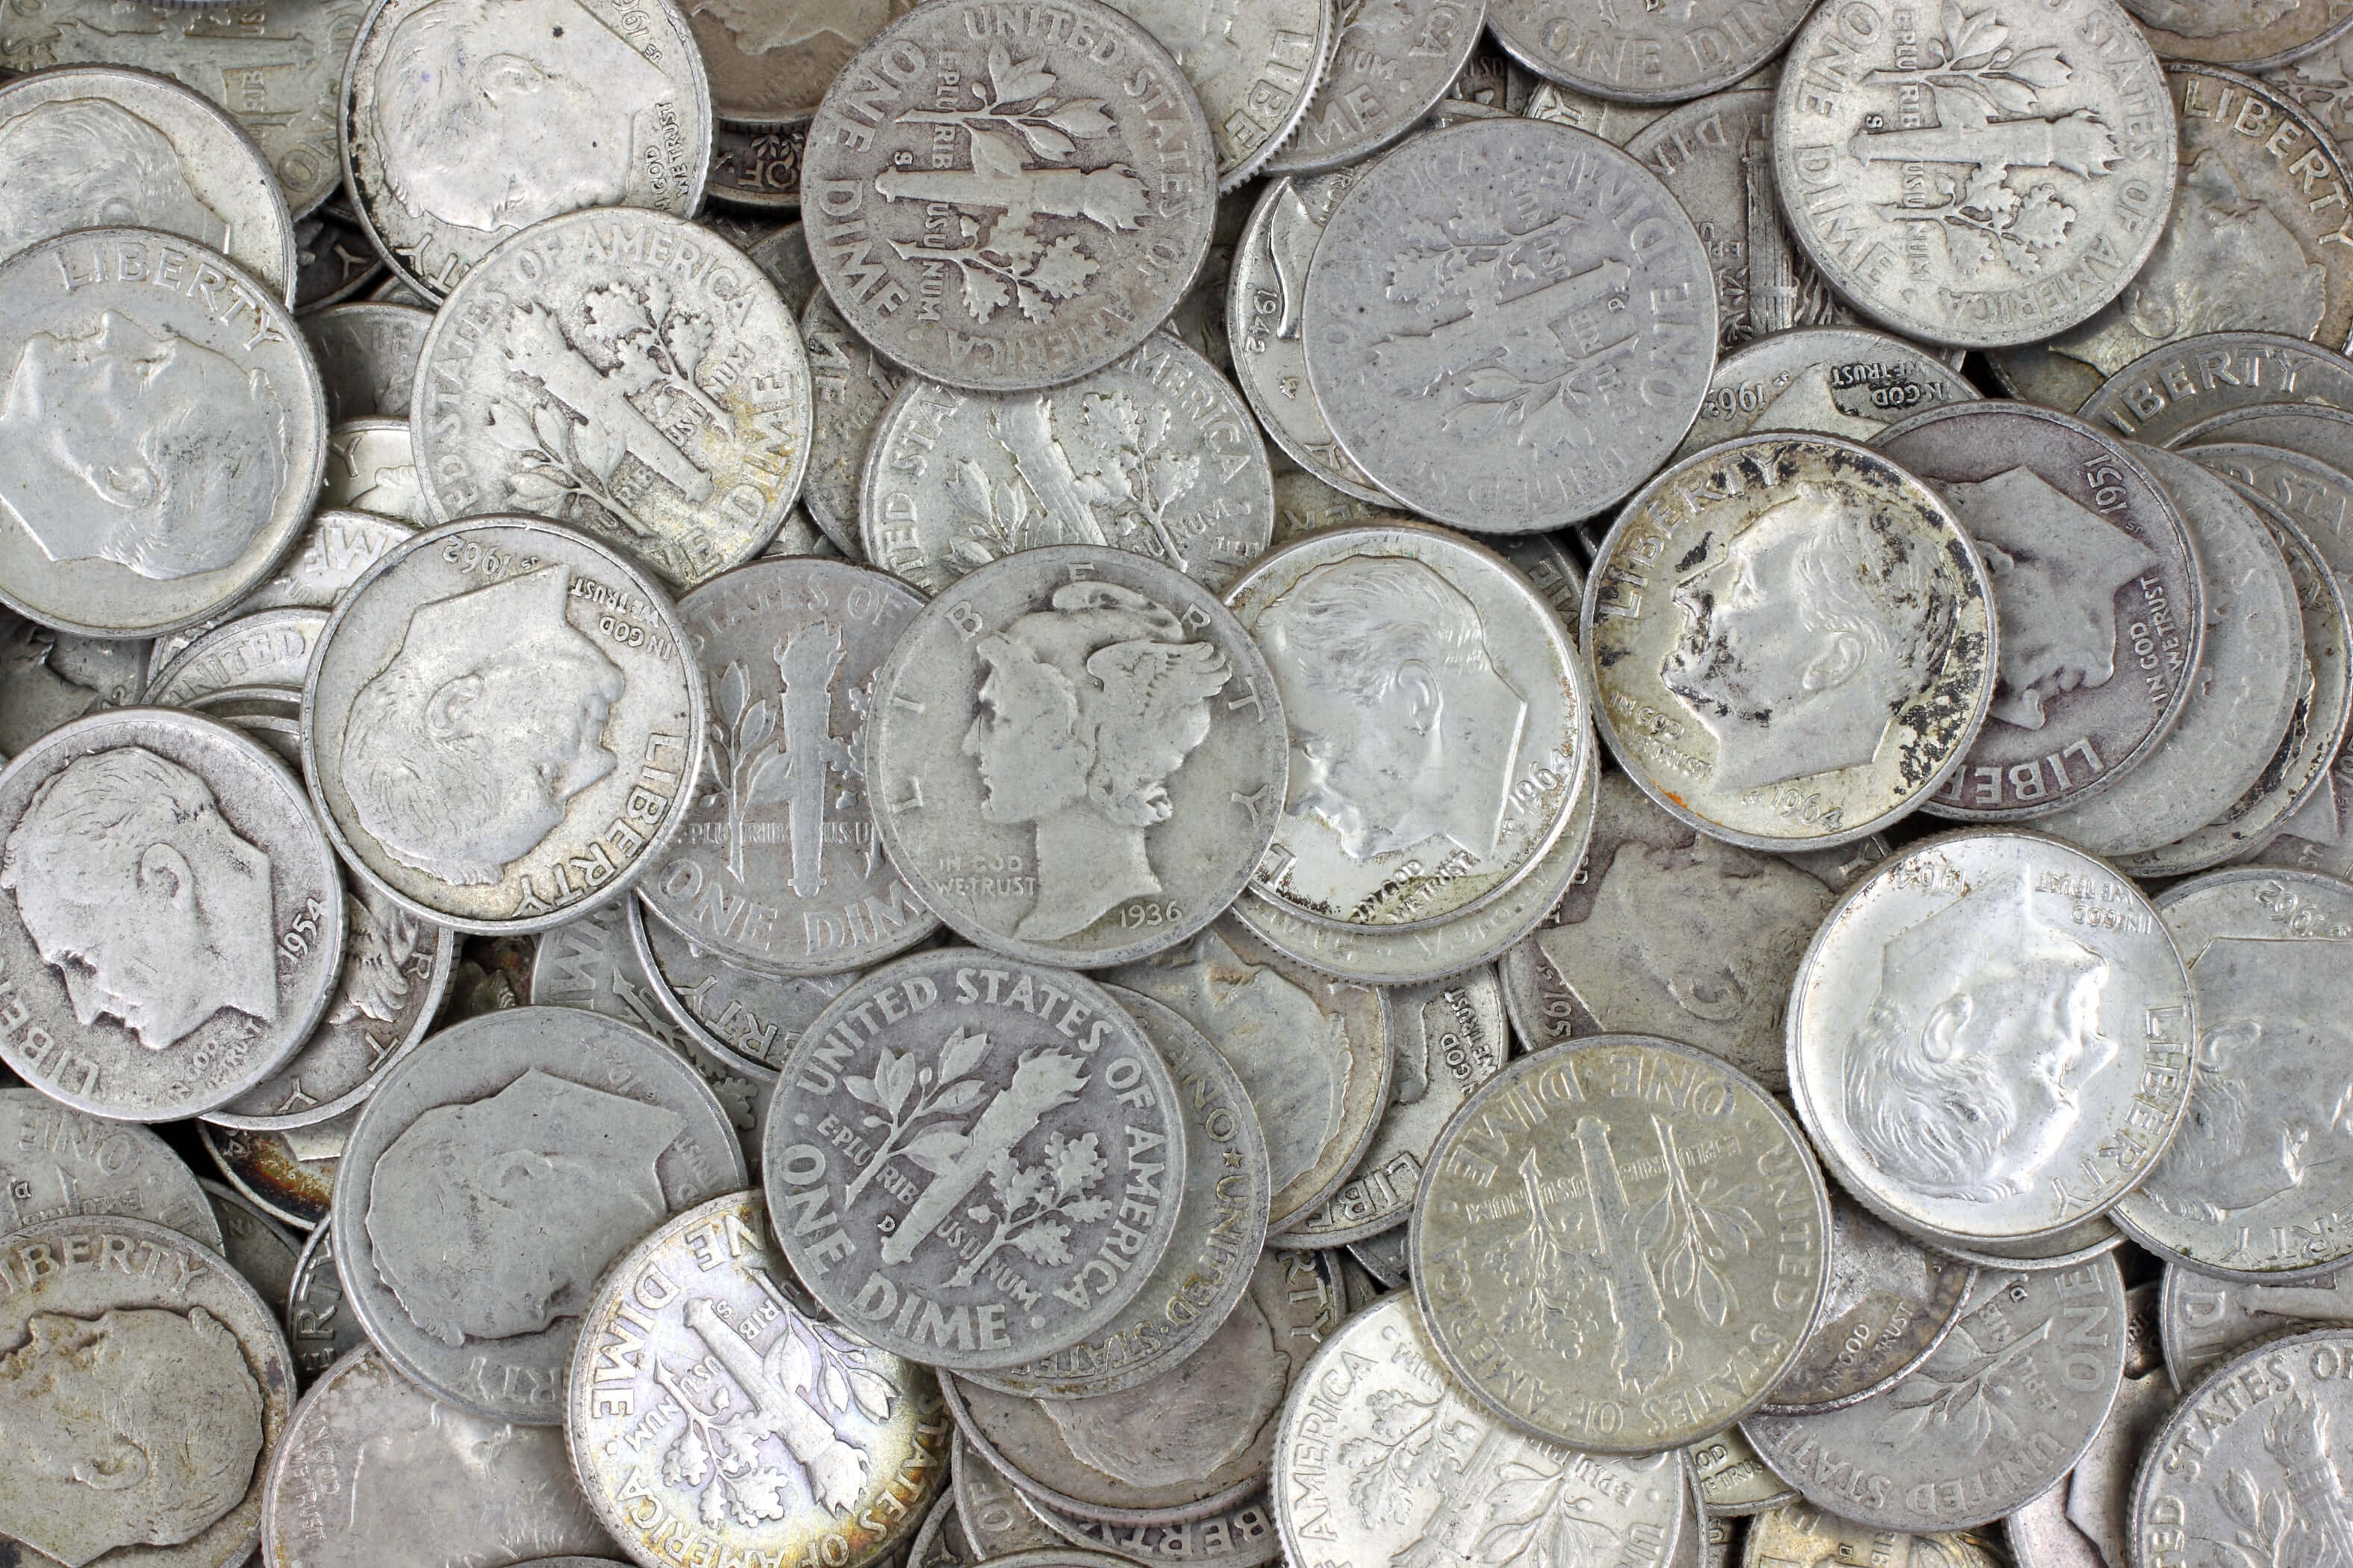 How To Buy Silver Coins: Step-by-Step Guide